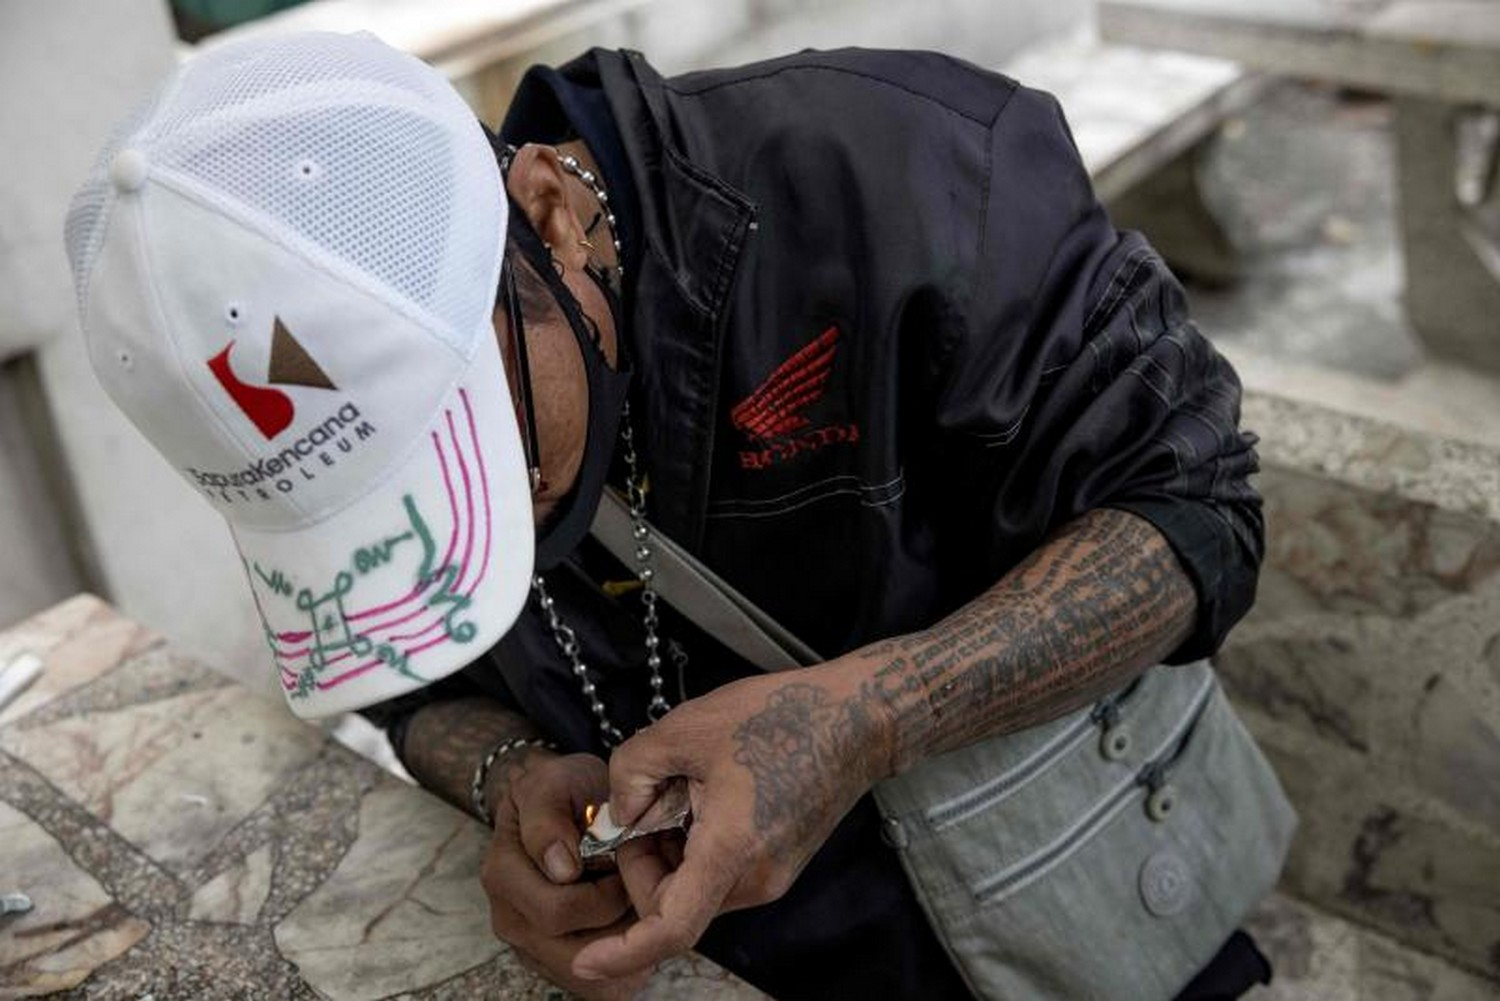 Motorbike taxi diver Soonthorn poses for photos as he demonstrates how he smokes a methamphetamine pill, during an interview with AFP in Bangkok. (Photo: Jack Taylor/AFP)